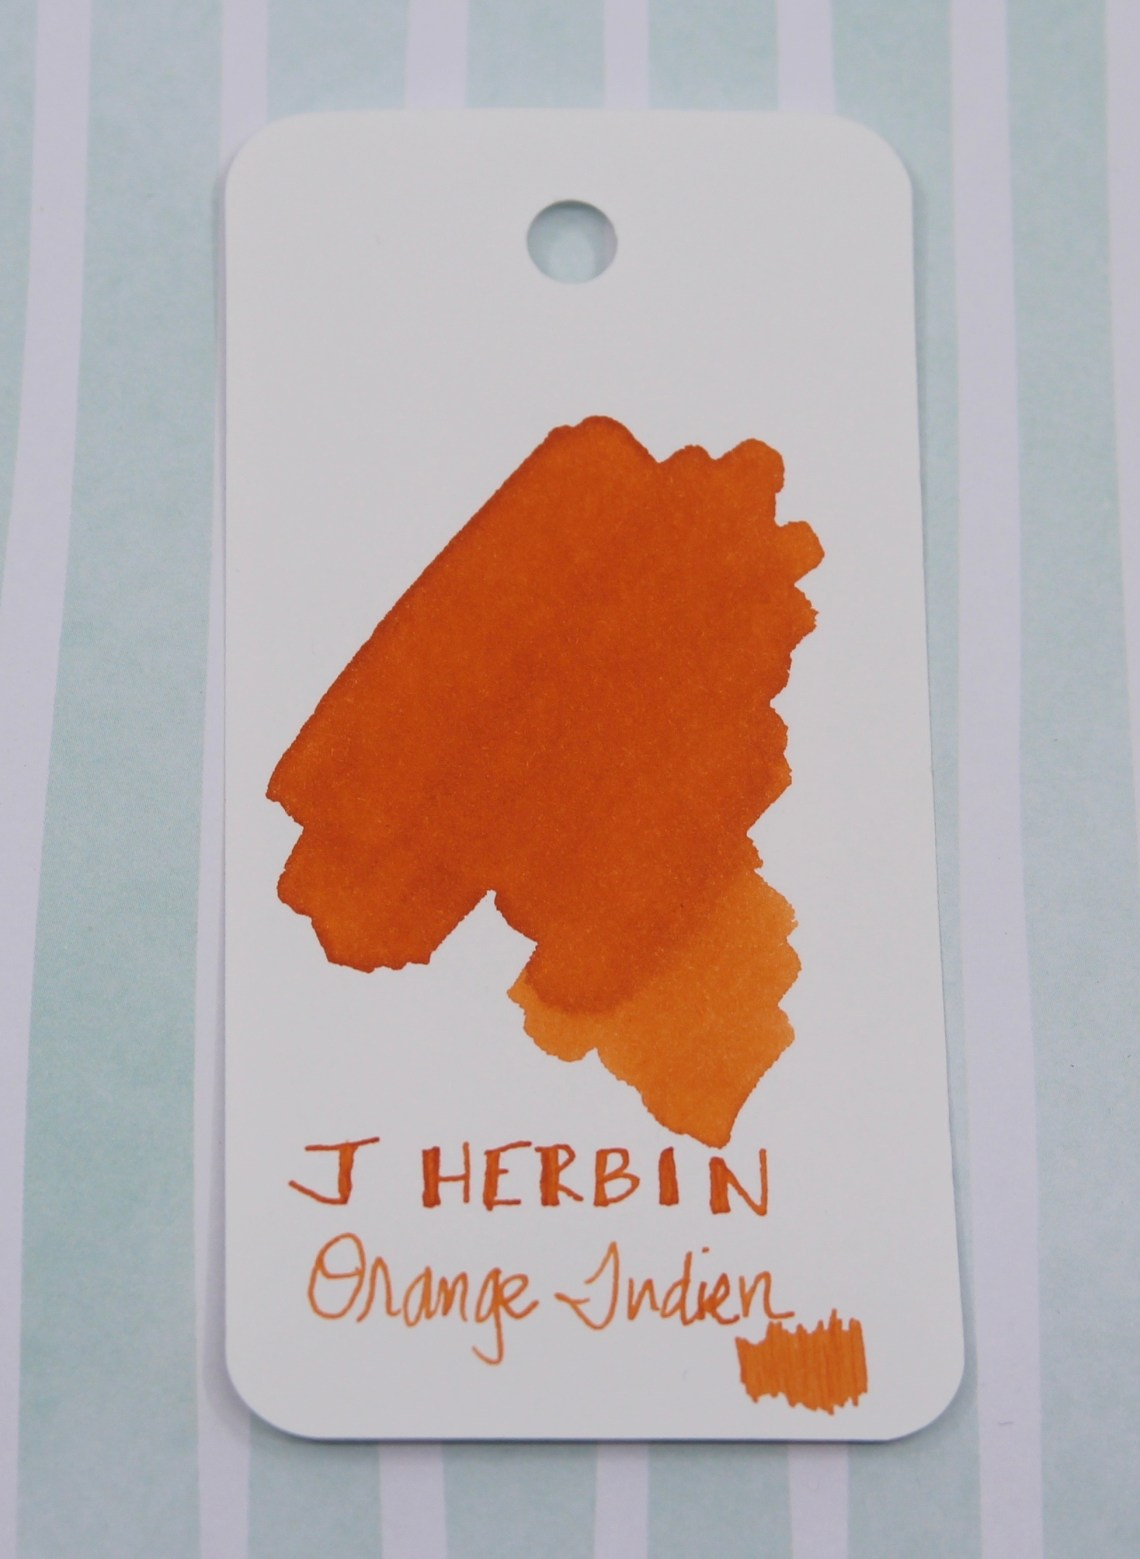 J. Herbin Orange Indien